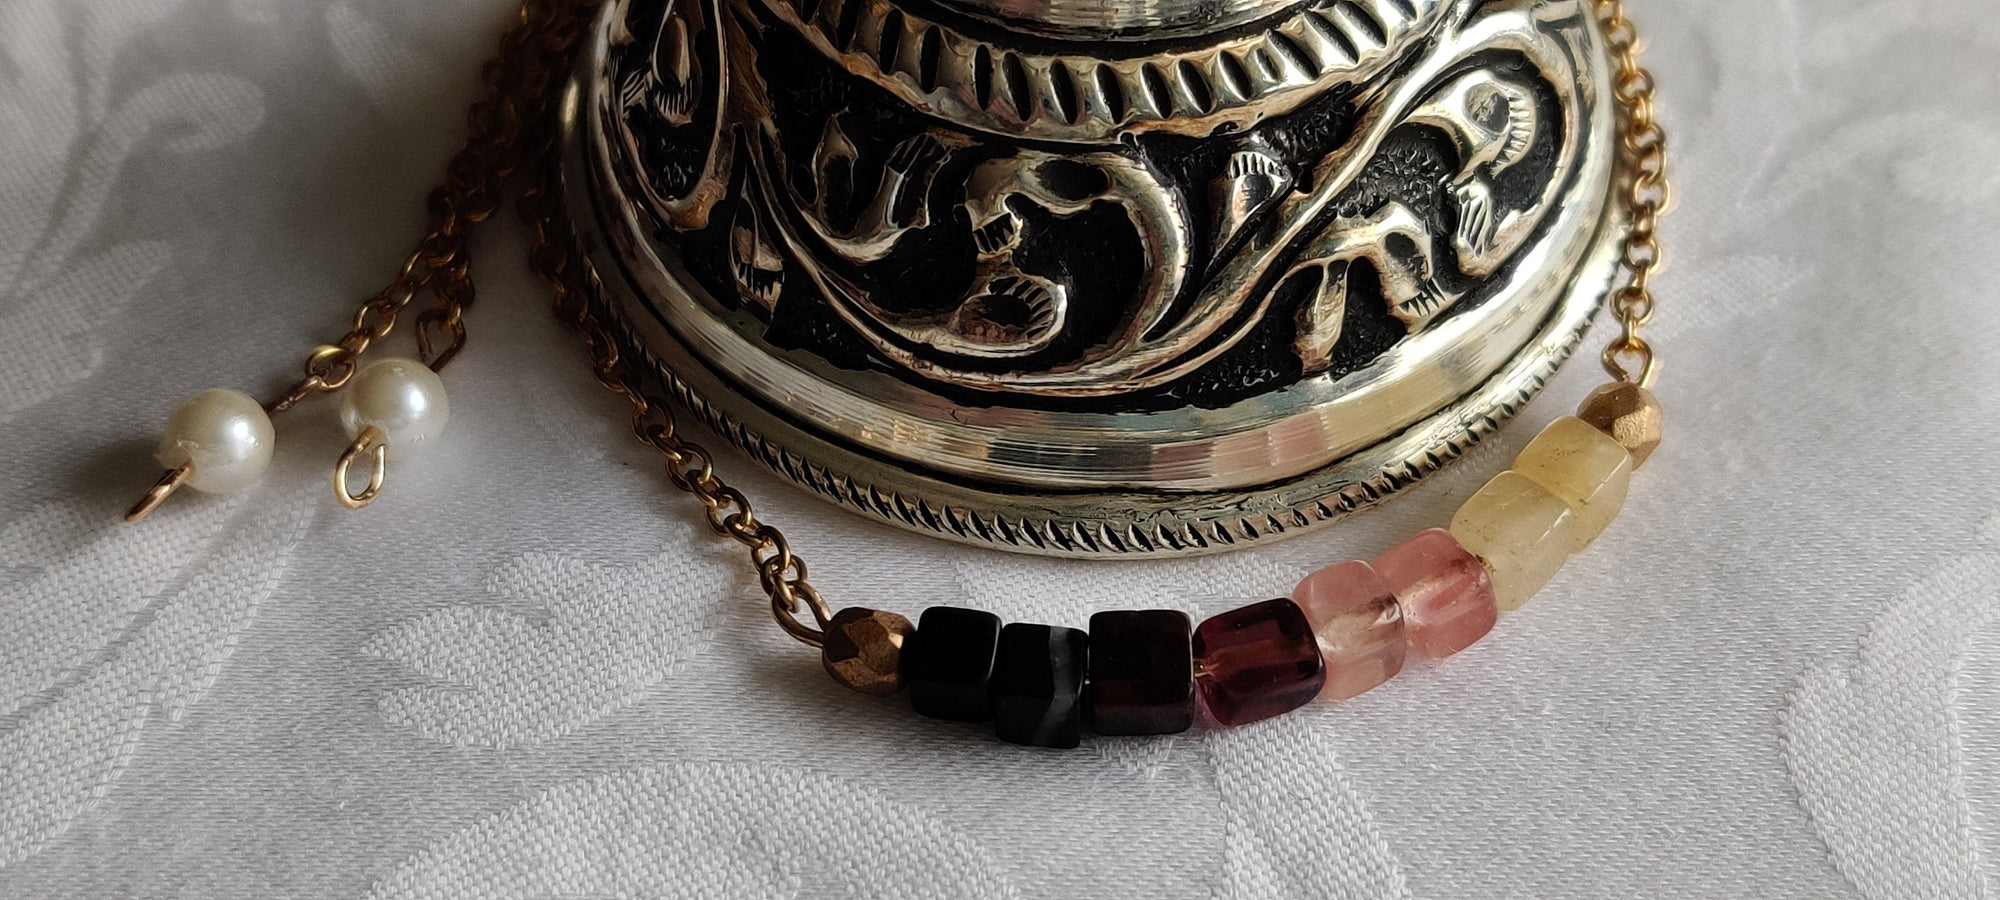 Healing crystals, Gift for her, Minimalist, Adjustable Bracelet , Carnelian, Tigers Eye, Gold plated chain